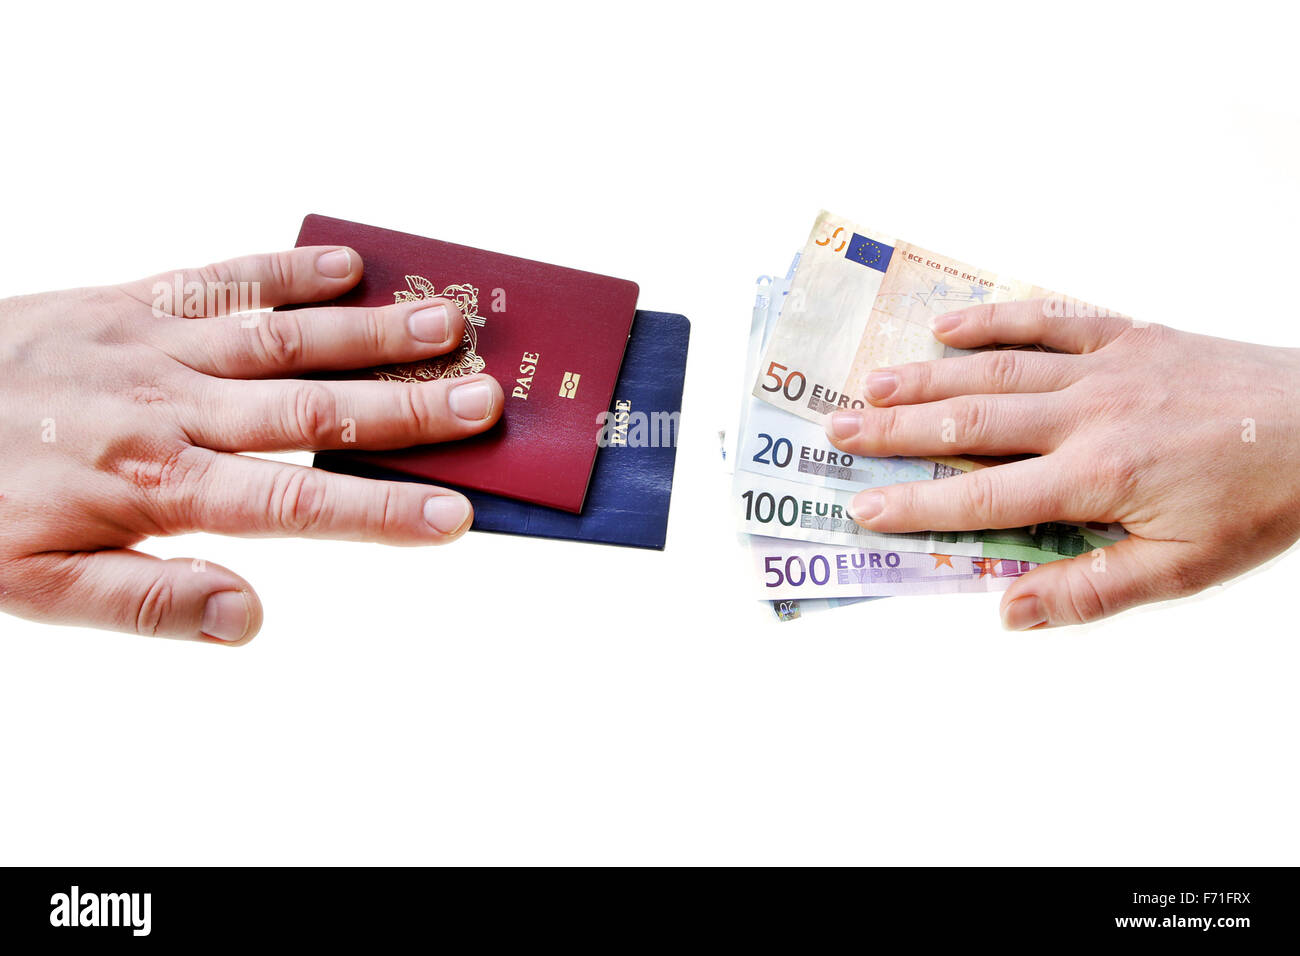 buying illegal foreign passport hands exchanging money and documents buyer seller isolated on white - Stock Image